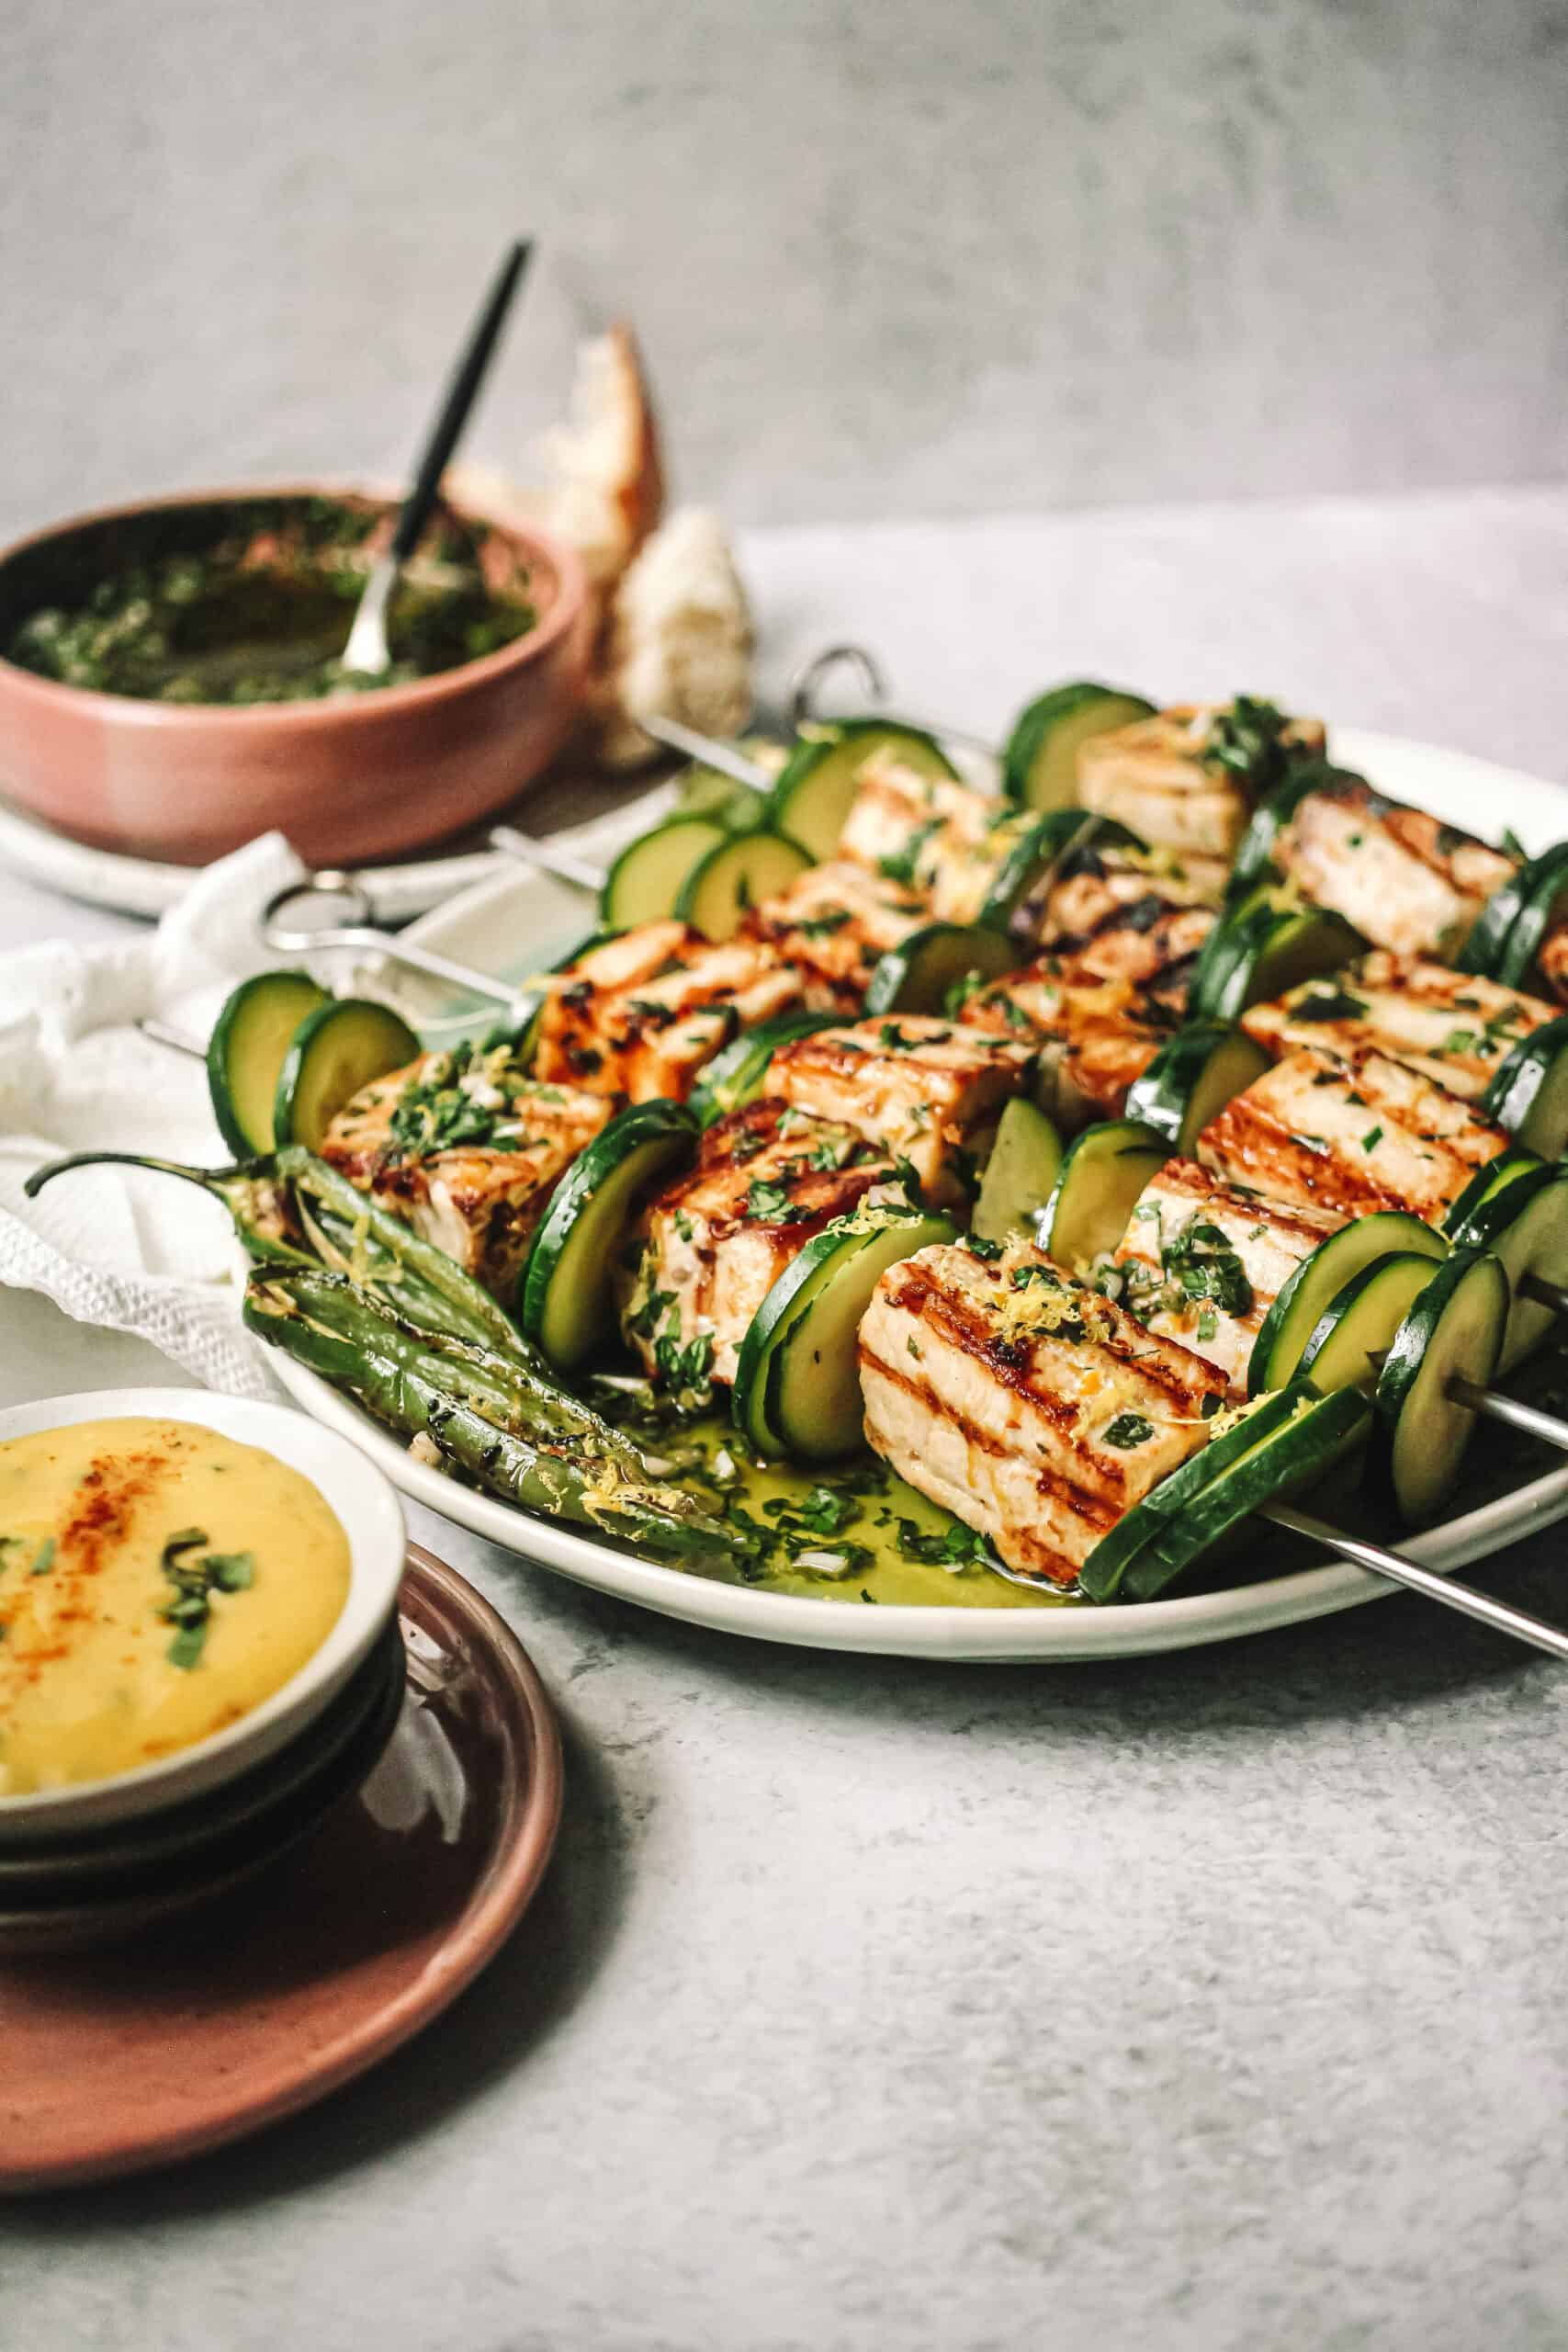 swordfish and zucchini on skewers on blue and white plate